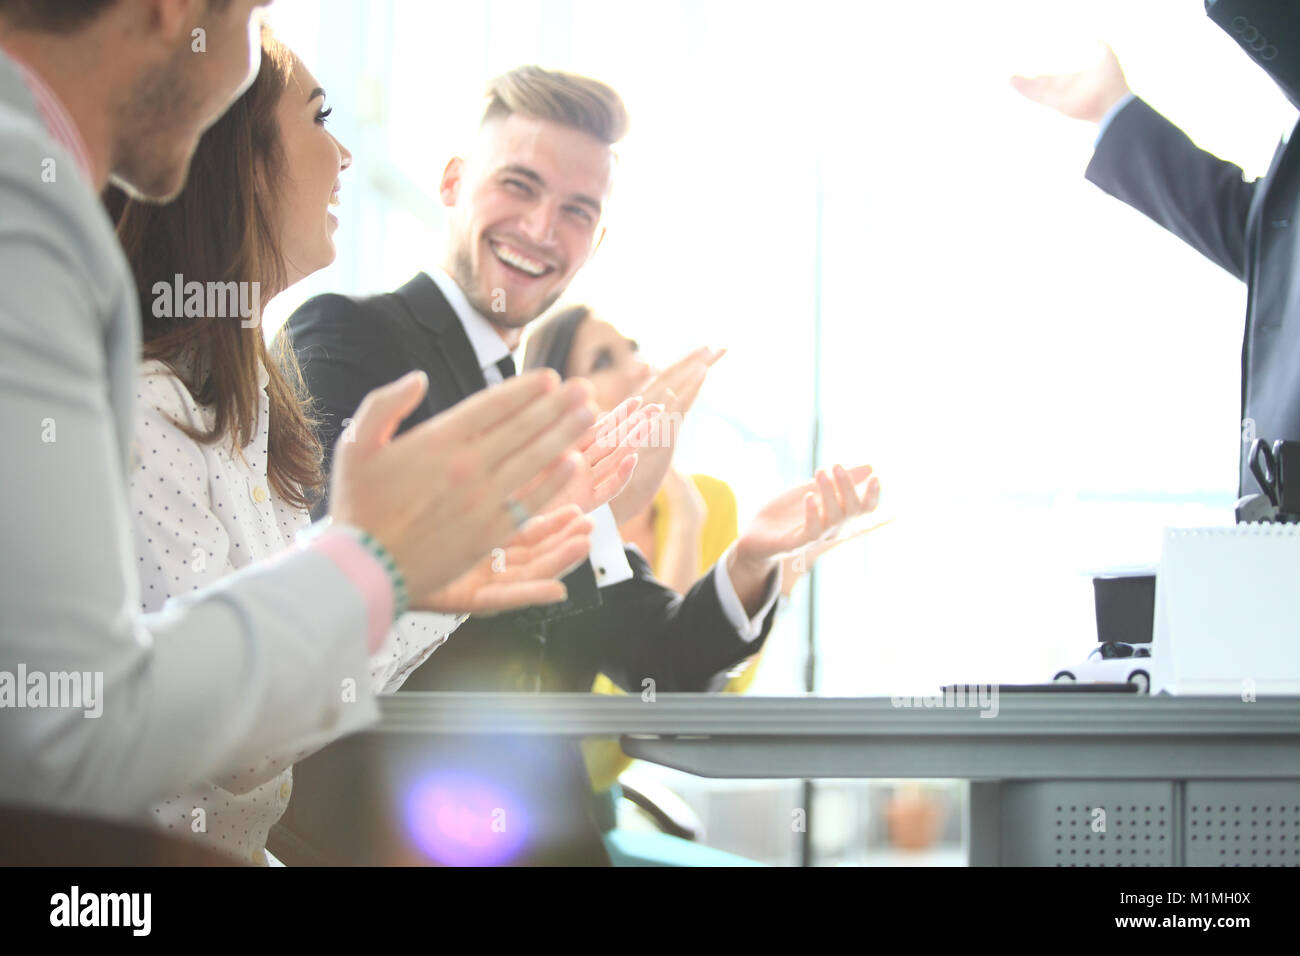 Photo of partners clapping hands after business seminar. Professional education, work meeting, presentation or coaching - Stock Image